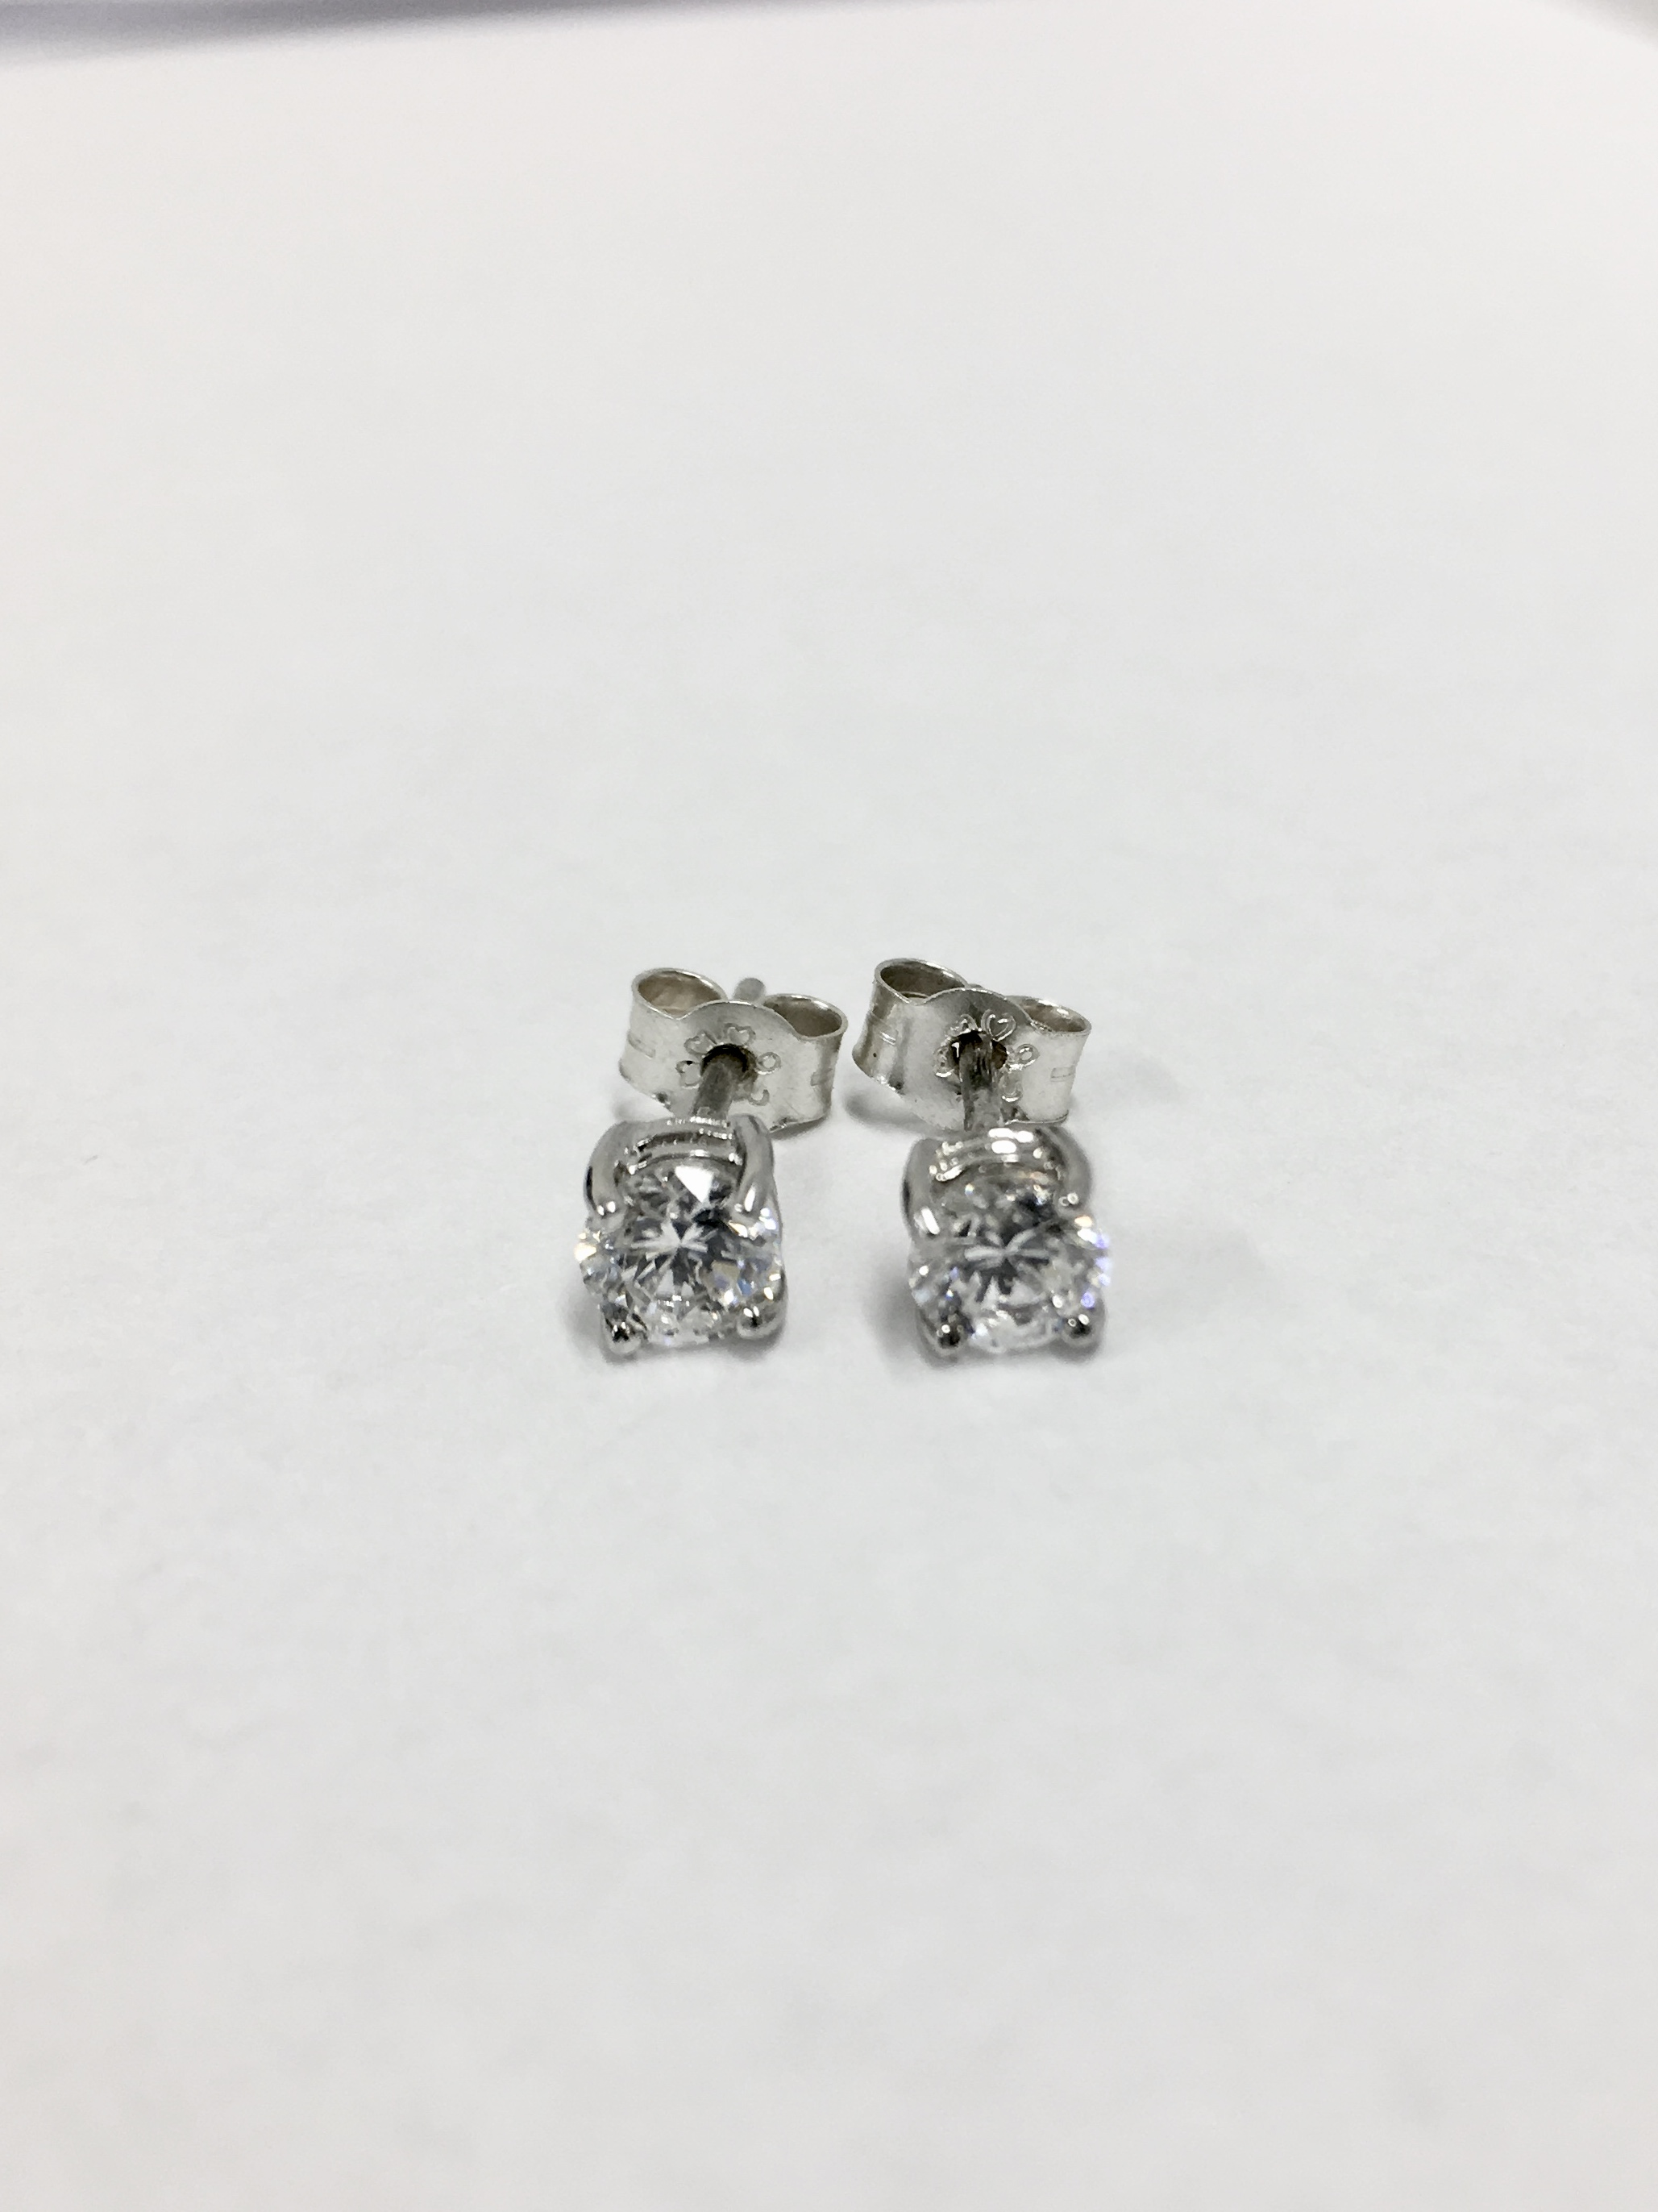 solitaire lugaro blue nile l canadian diamond stud earrings